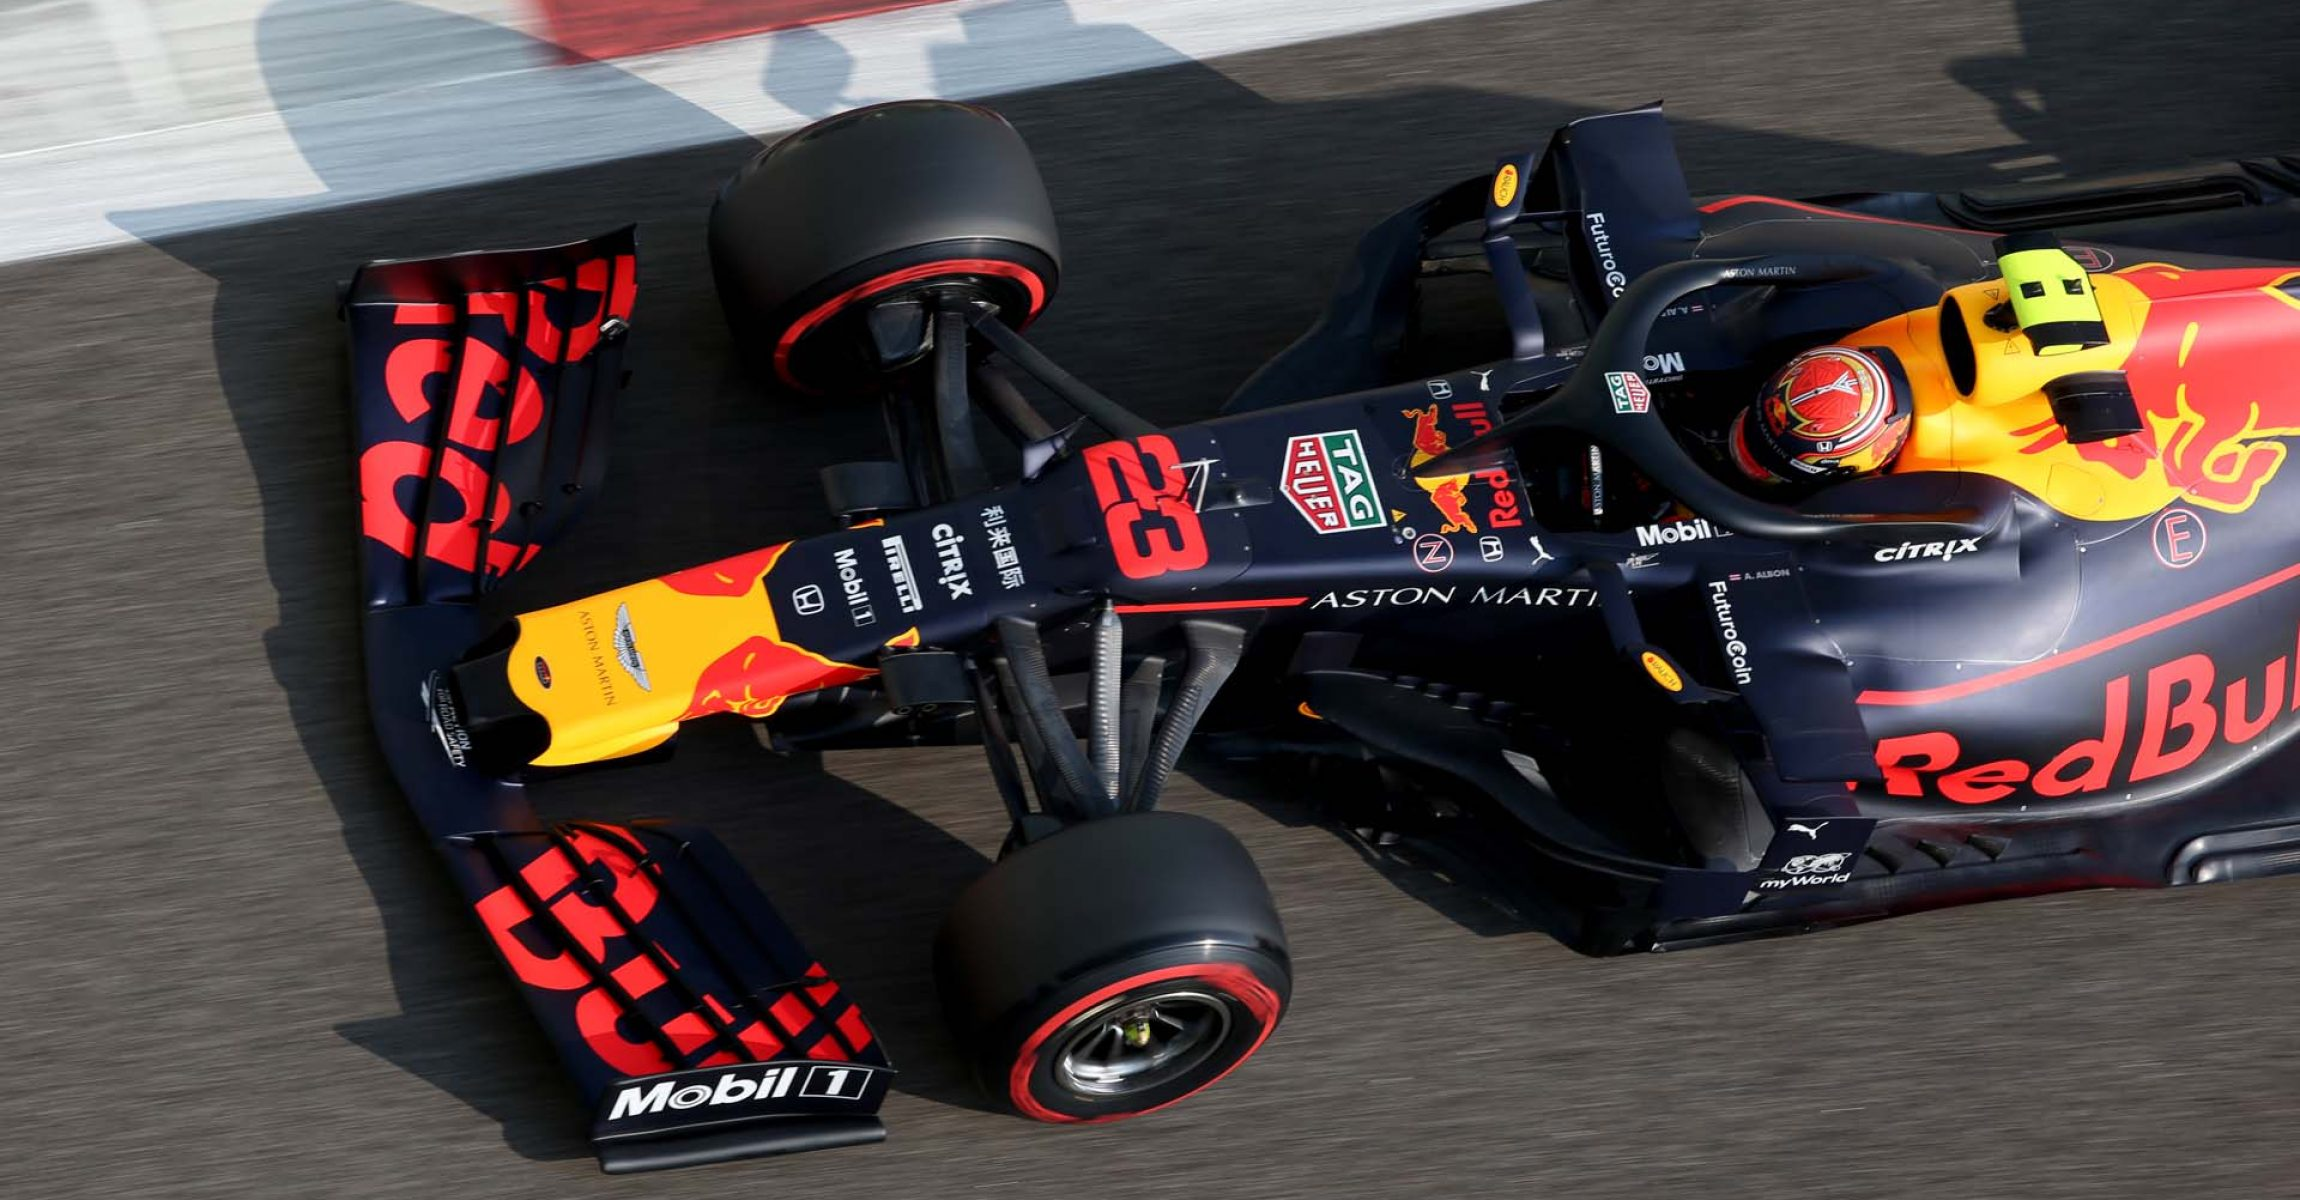 ABU DHABI, UNITED ARAB EMIRATES - NOVEMBER 30: Alexander Albon of Thailand driving the (23) Aston Martin Red Bull Racing RB15 on track during final practice for the F1 Grand Prix of Abu Dhabi at Yas Marina Circuit on November 30, 2019 in Abu Dhabi, United Arab Emirates. (Photo by Charles Coates/Getty Images) // Getty Images / Red Bull Content Pool // AP-22BGP9W5N1W11 // Usage for editorial use only //